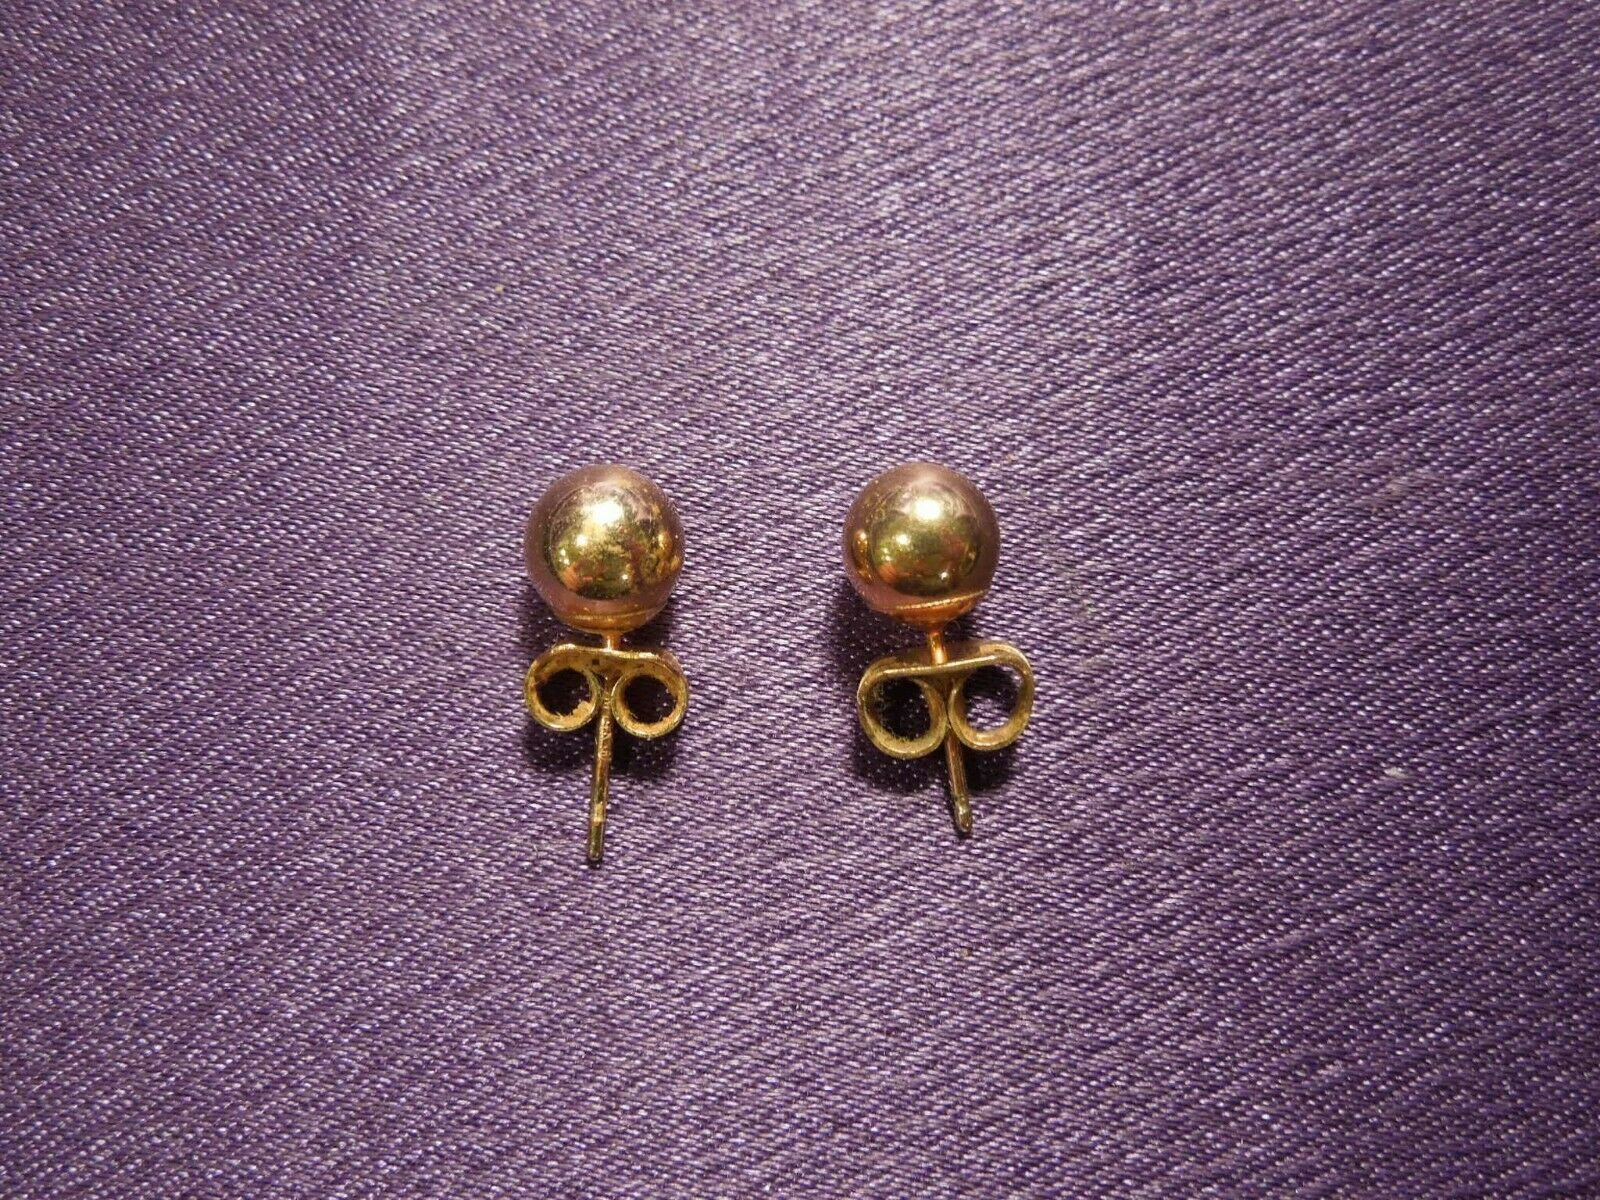 14K Gold Ball Stud Earring Pair image 2